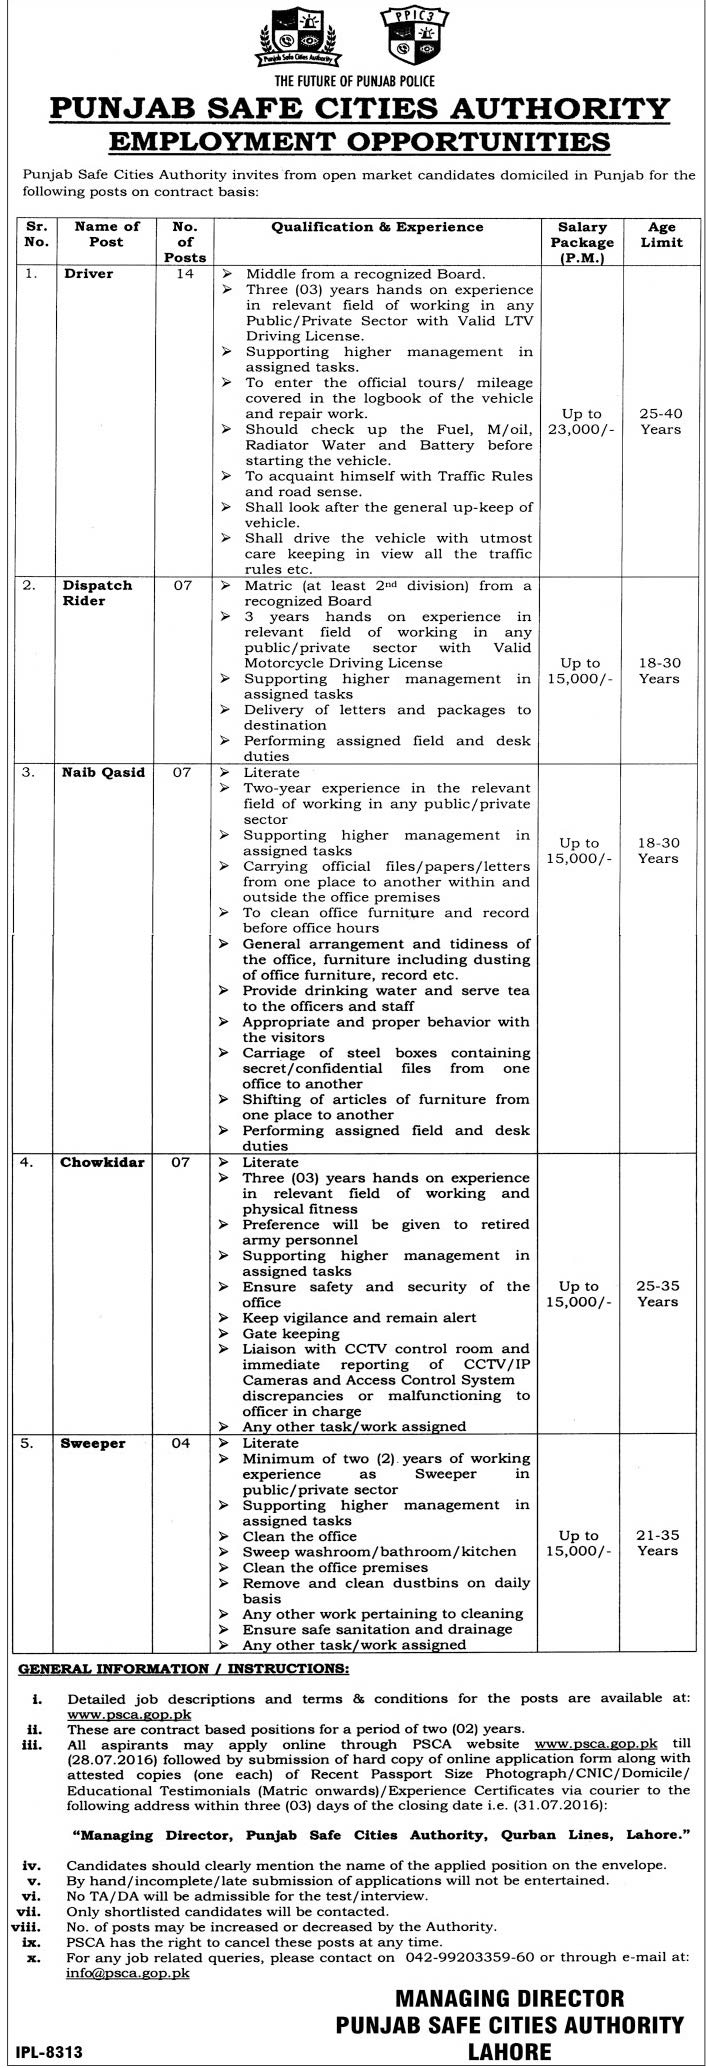 Punjab Safe City Authority bas Scale Jobs